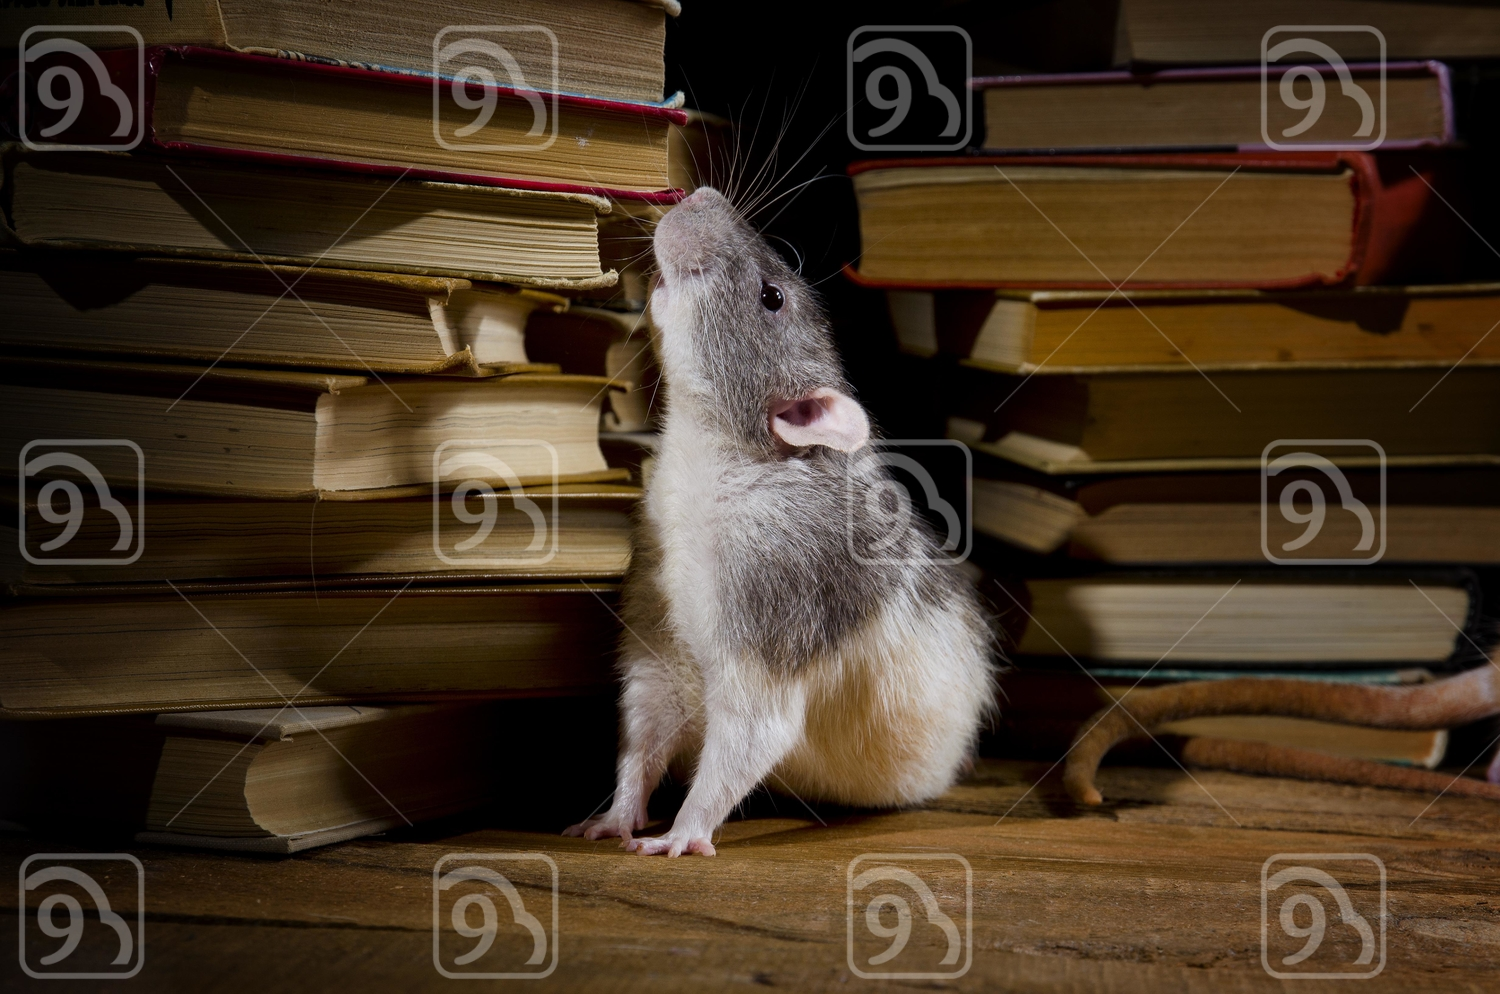 Rat scurrying around old books